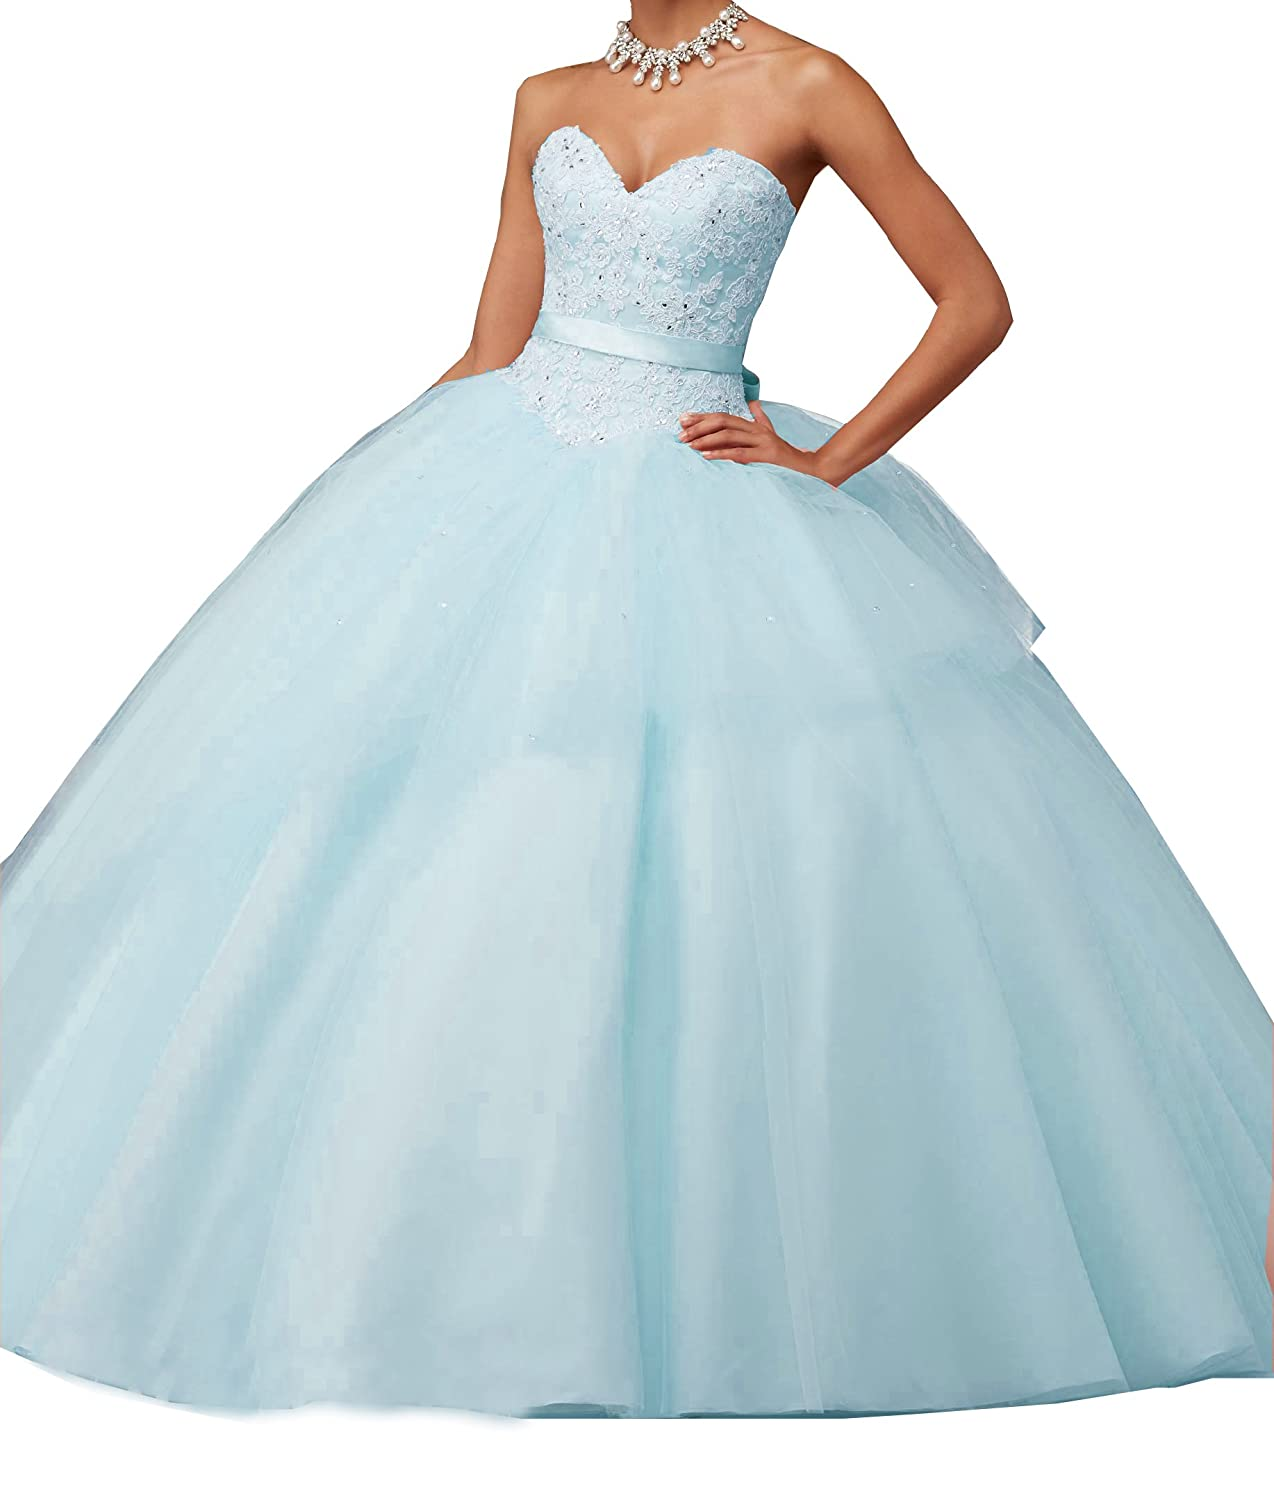 Eldecey Women\'s Ball Gown Tulle Sweet 16 Strapless Prom Quinceanera ...